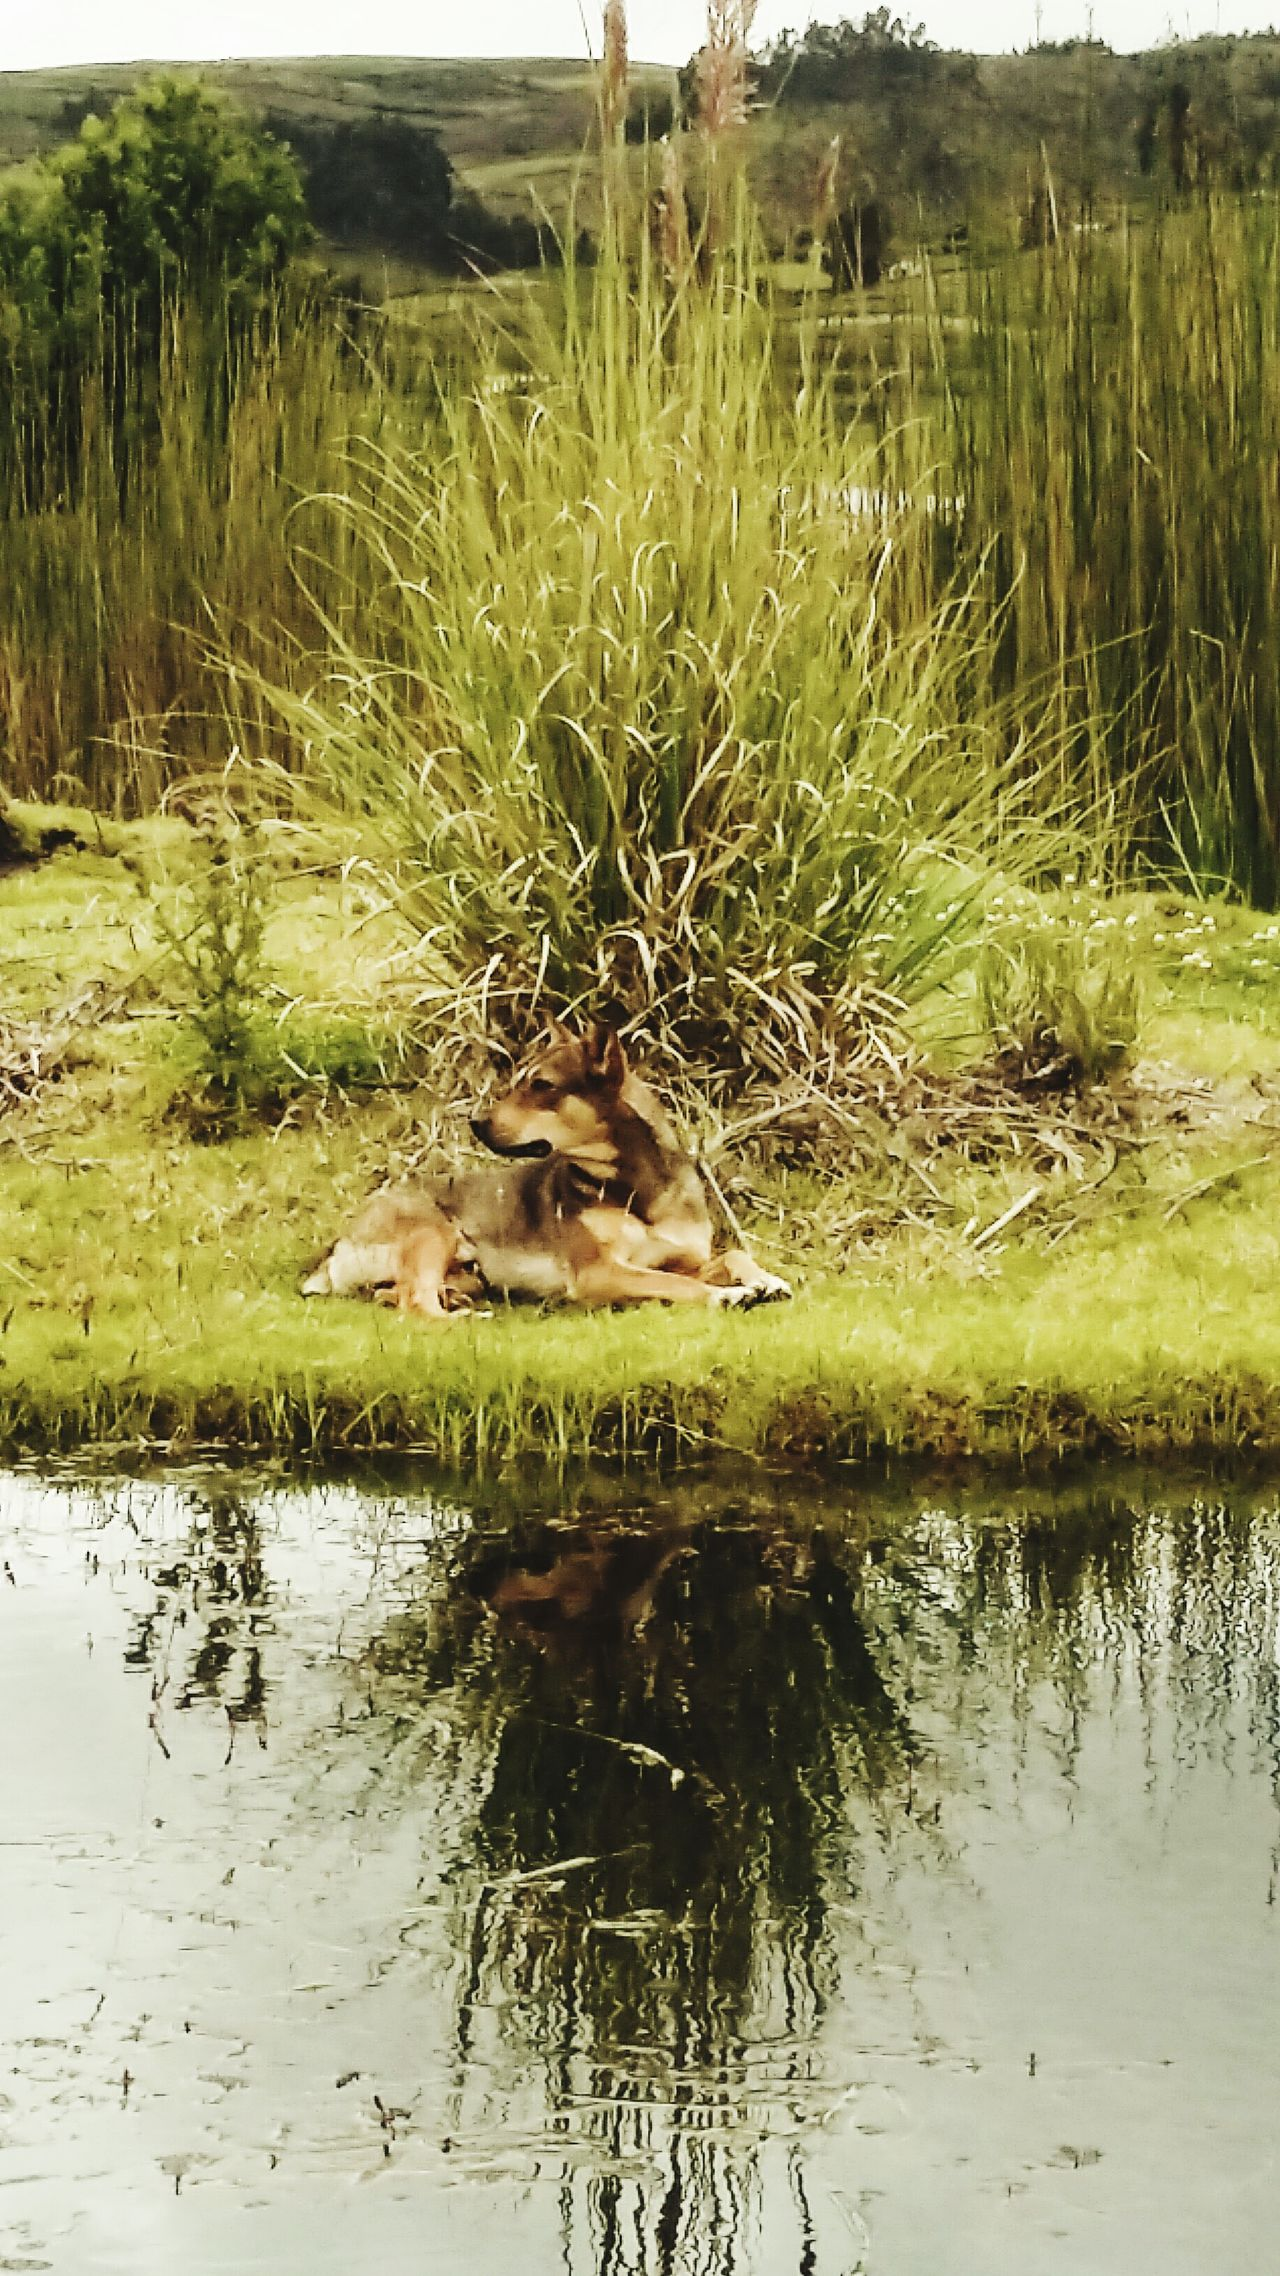 Dogs Dogs Of EyeEm Dog❤ DogLove Dogoftheday Dog Portrait Dog Photography Dogs Life Colta Coltaecuador Outdoors Grass Reflection Dogrelaxing